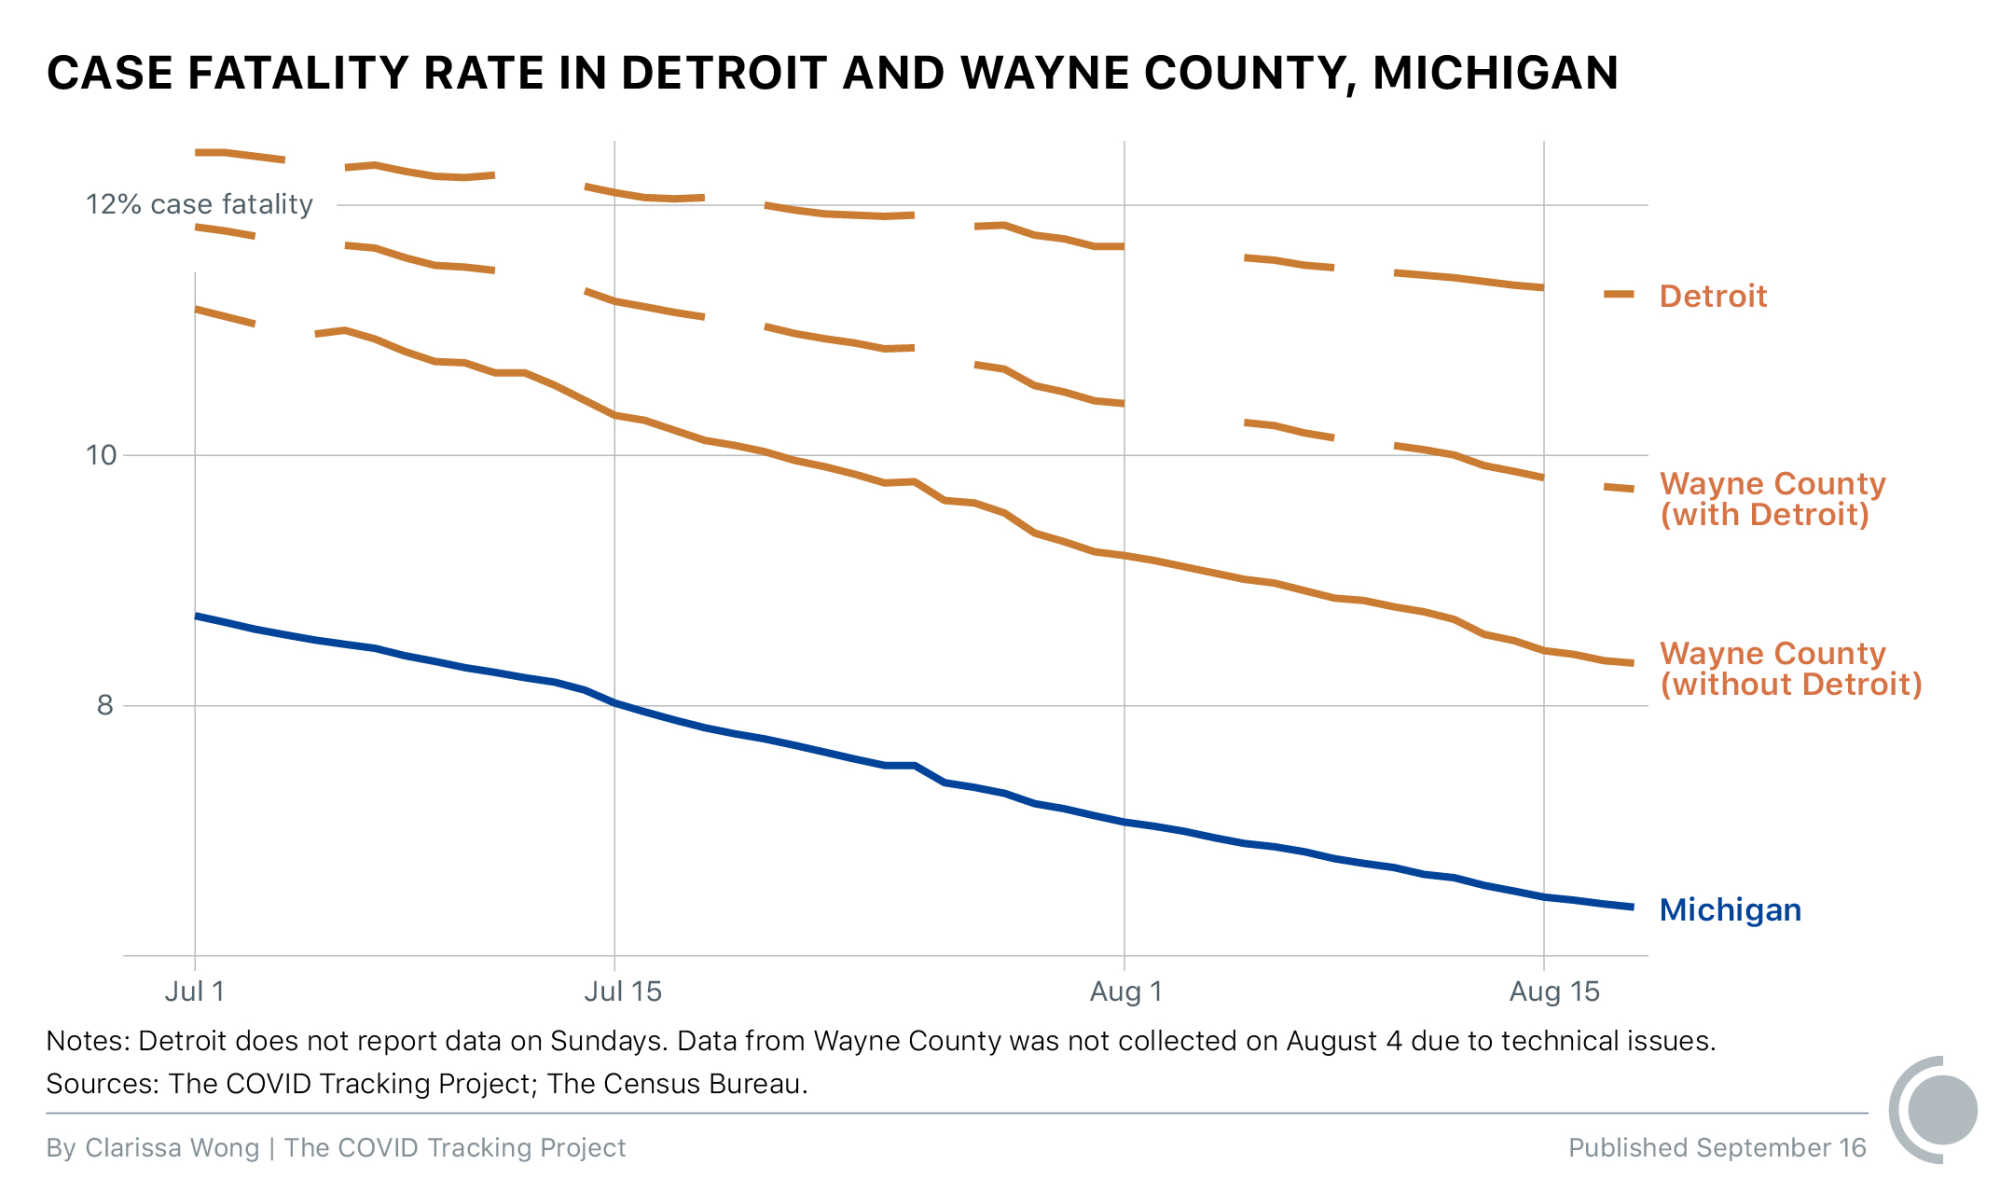 Case fatality rate in Detroit and Wayne County, Michigan